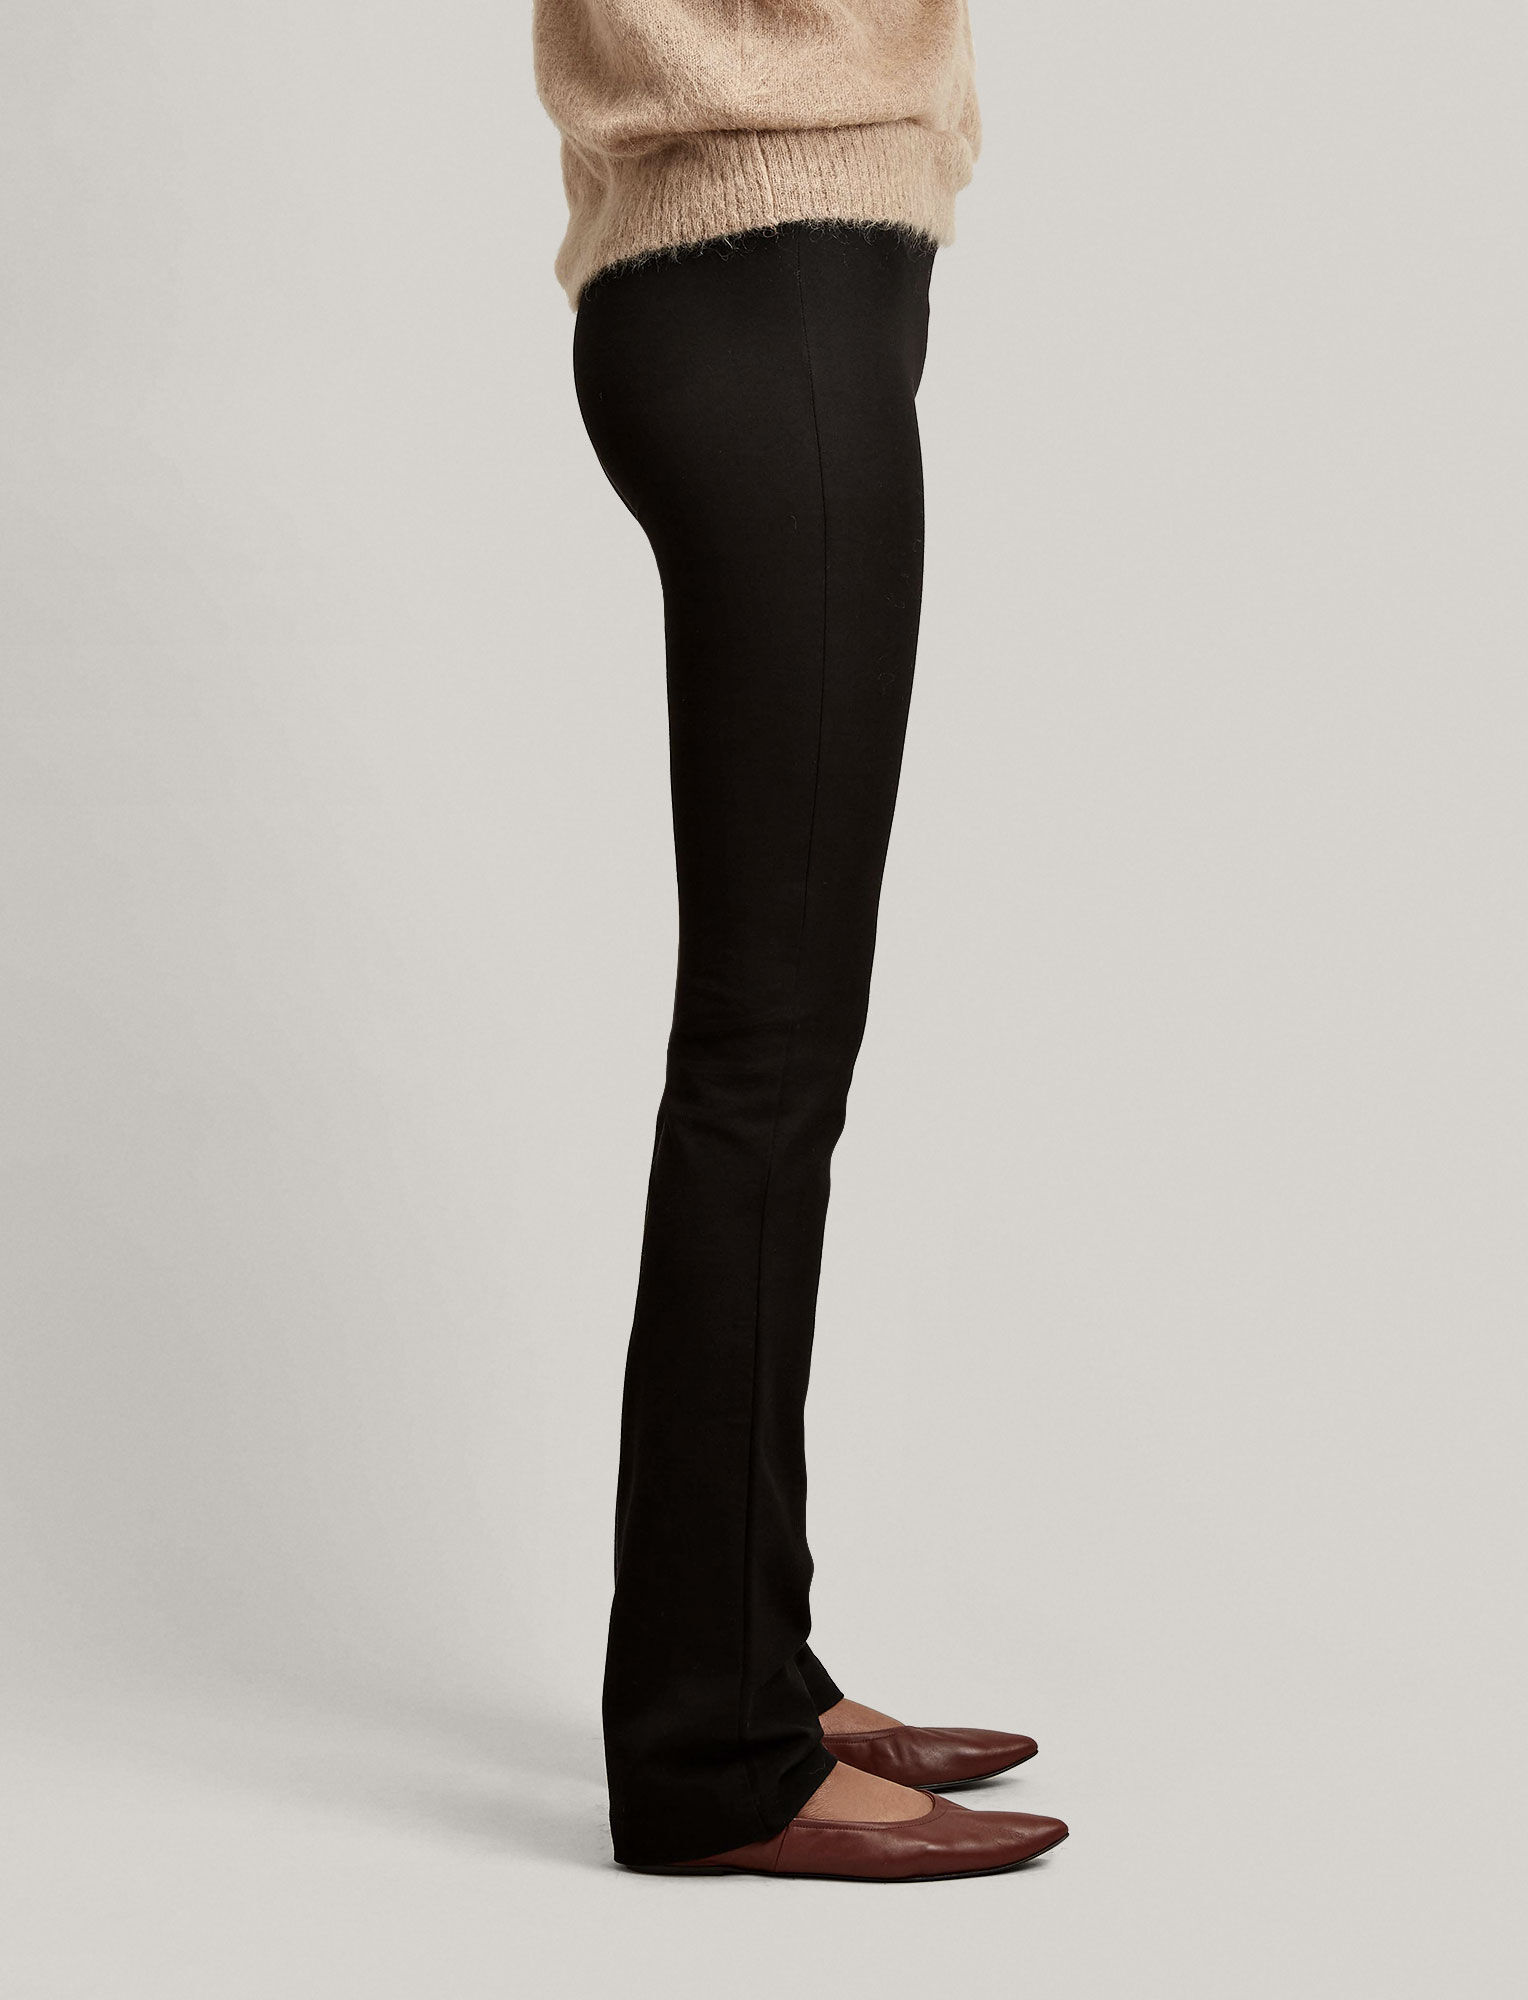 Joseph, Gabardine Stretch Lex Trouser, in BLACK